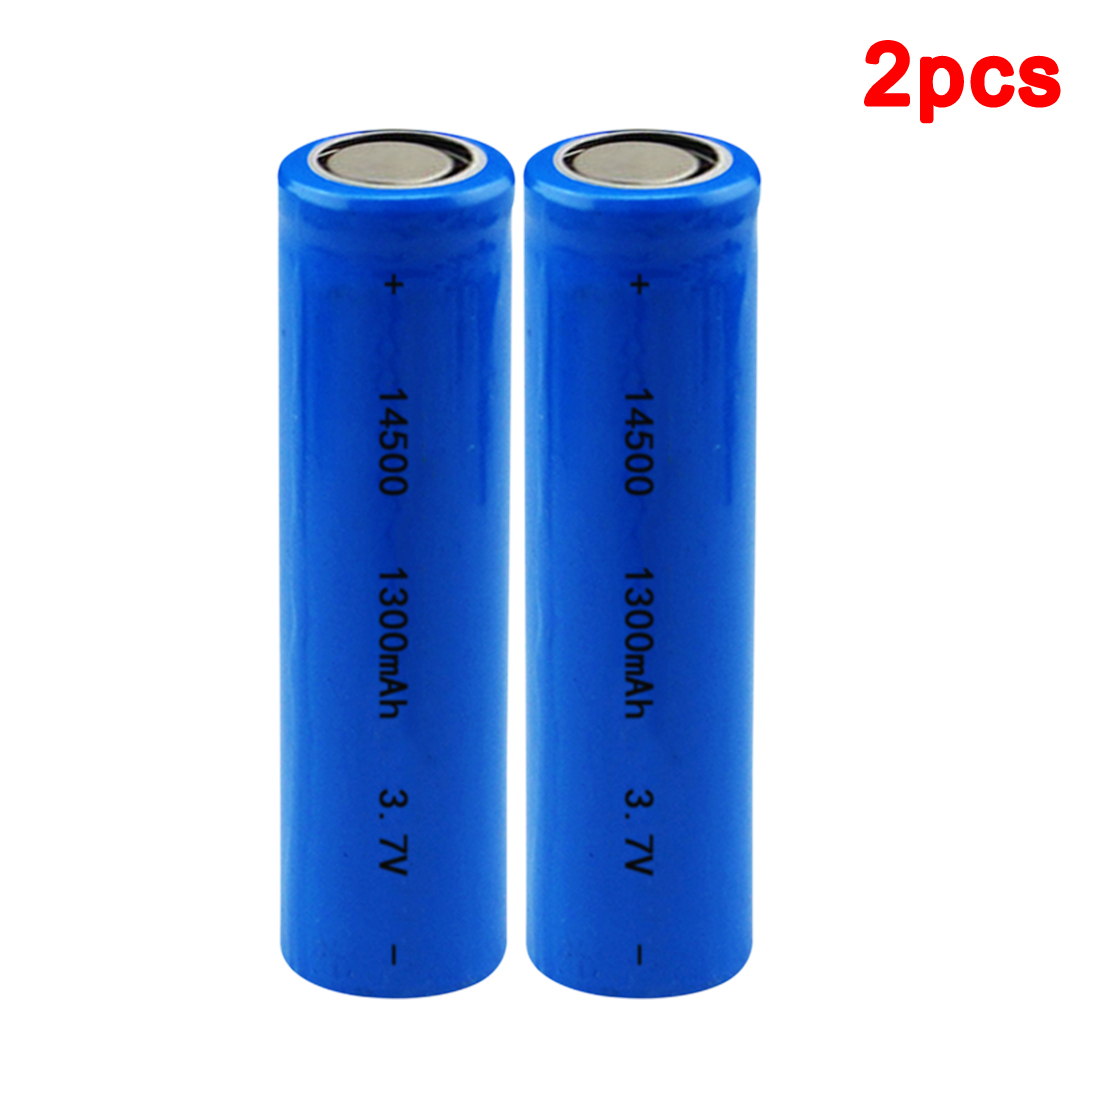 centechia Top Sale 2 pcs High Capacitance 14500 Battery 3.7V 1300mAh Rechargeable Battery for Led Flashlight Batery Battery est image